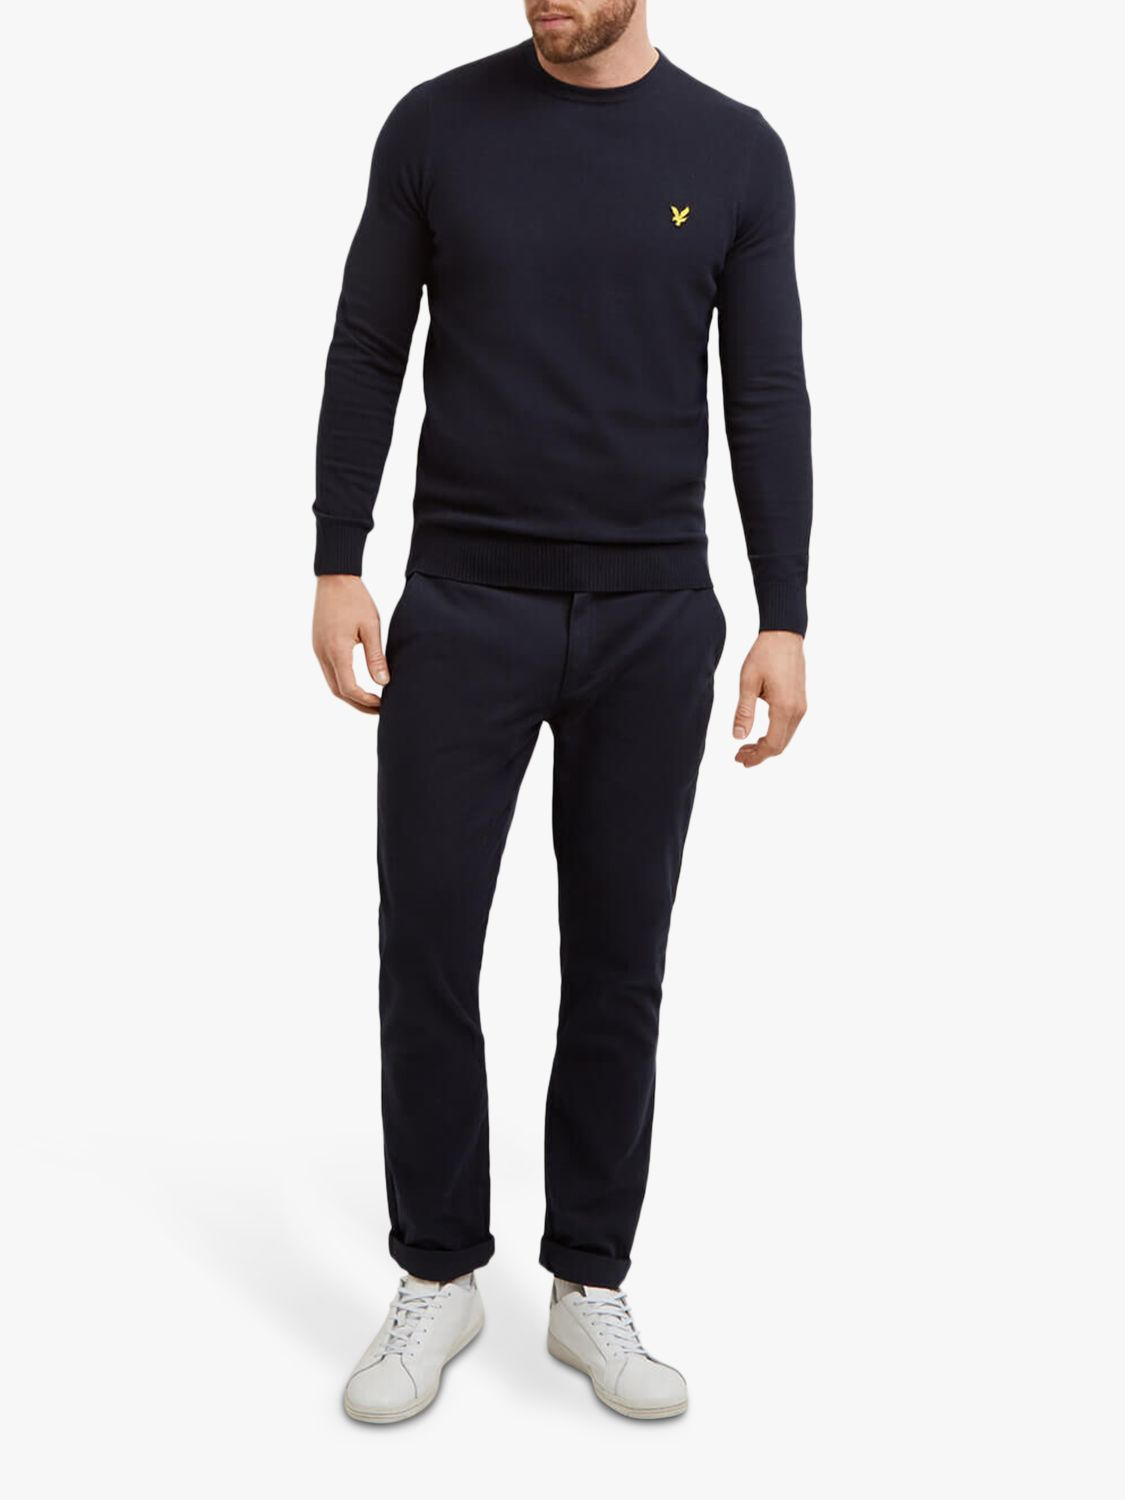 Lyle & Scott Lyle & Scott Crew Neck Cotton Merino Jumper, Navy